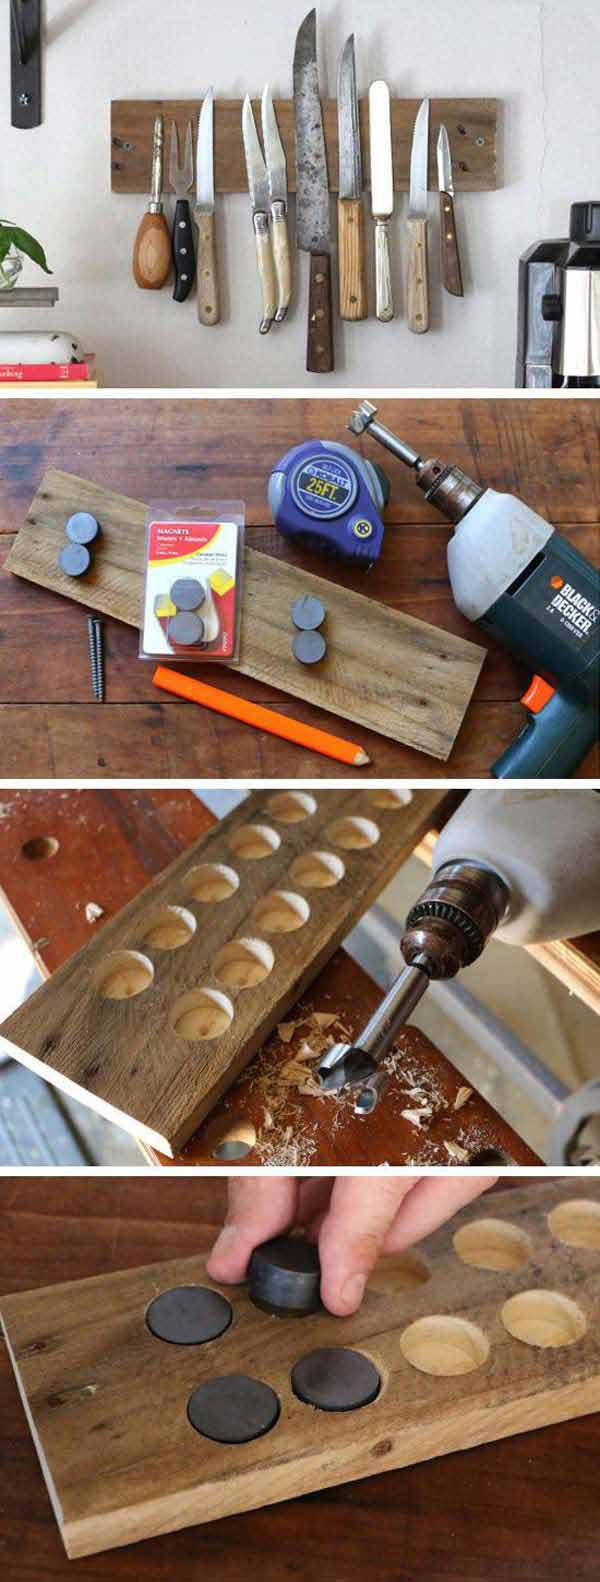 21 Insanely Cool DIY Projects That Will Amaze You ...